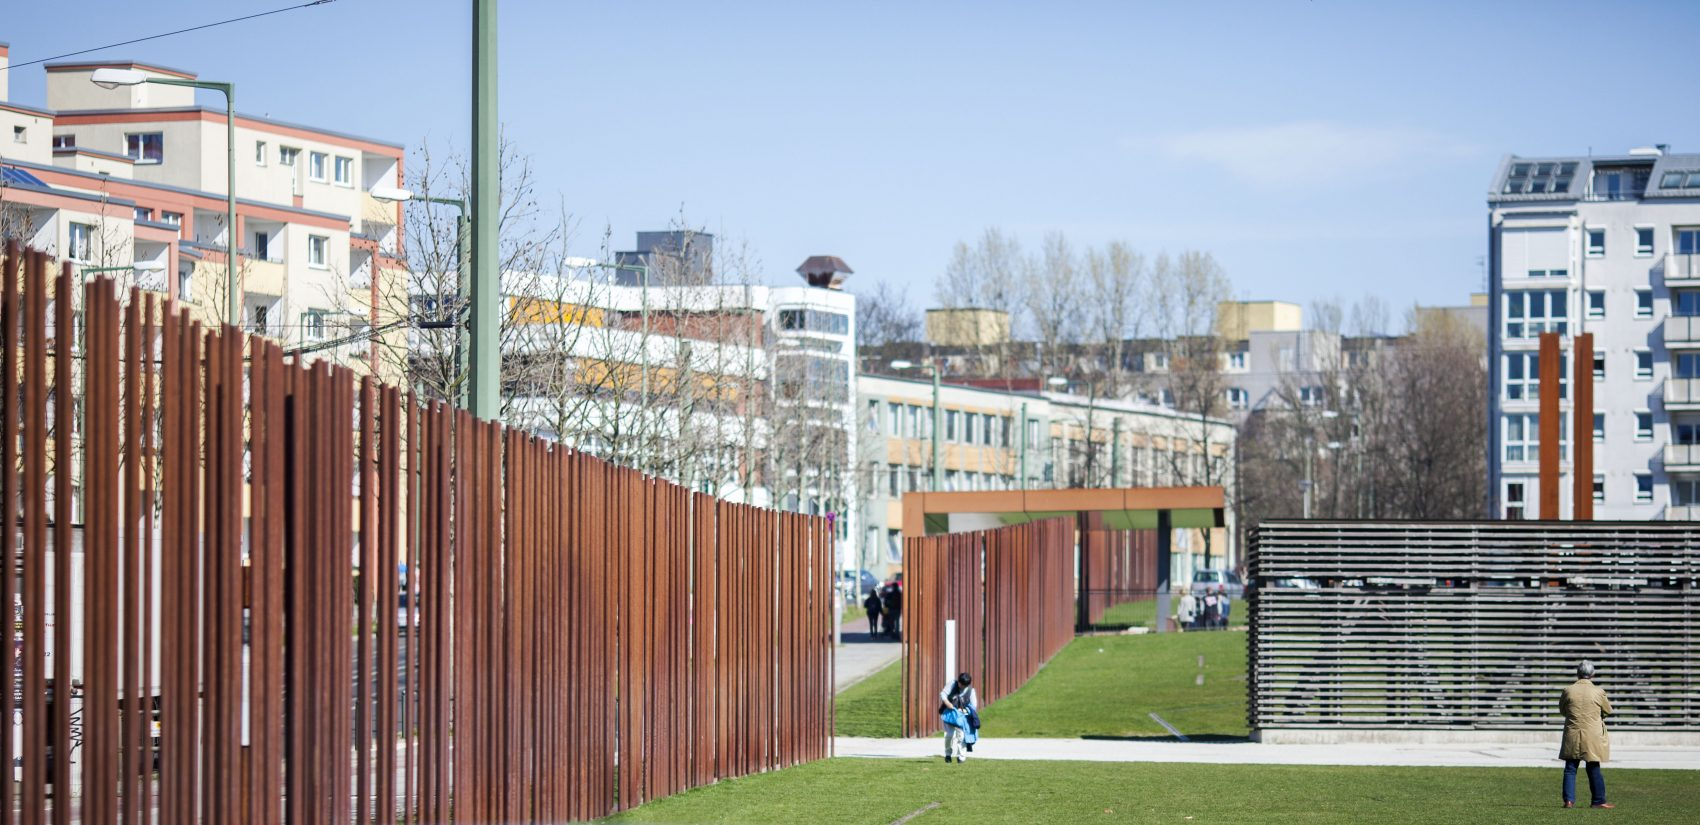 </b> The Berlin Wall Memorial stands where the physical border of former East and West Berlin once was. It is now thought of as a social barrier dividing the district of Mitte. (Jessica Kourkounis/For Keystone Crossroads)